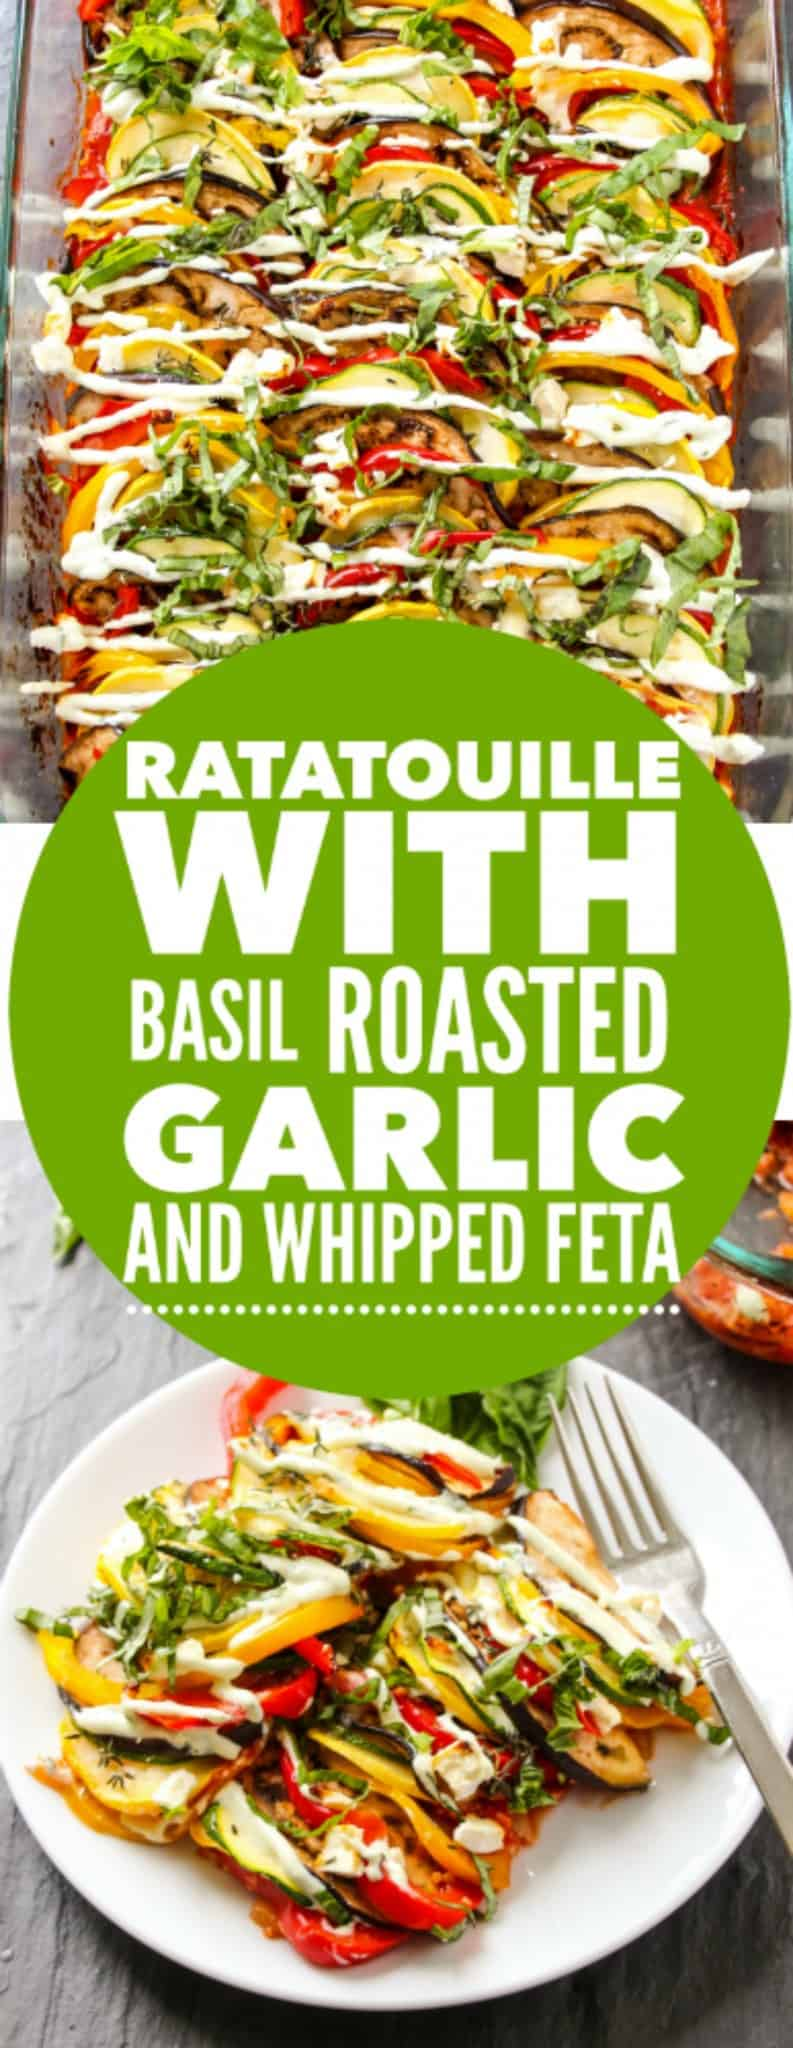 ratatouille-long-feta